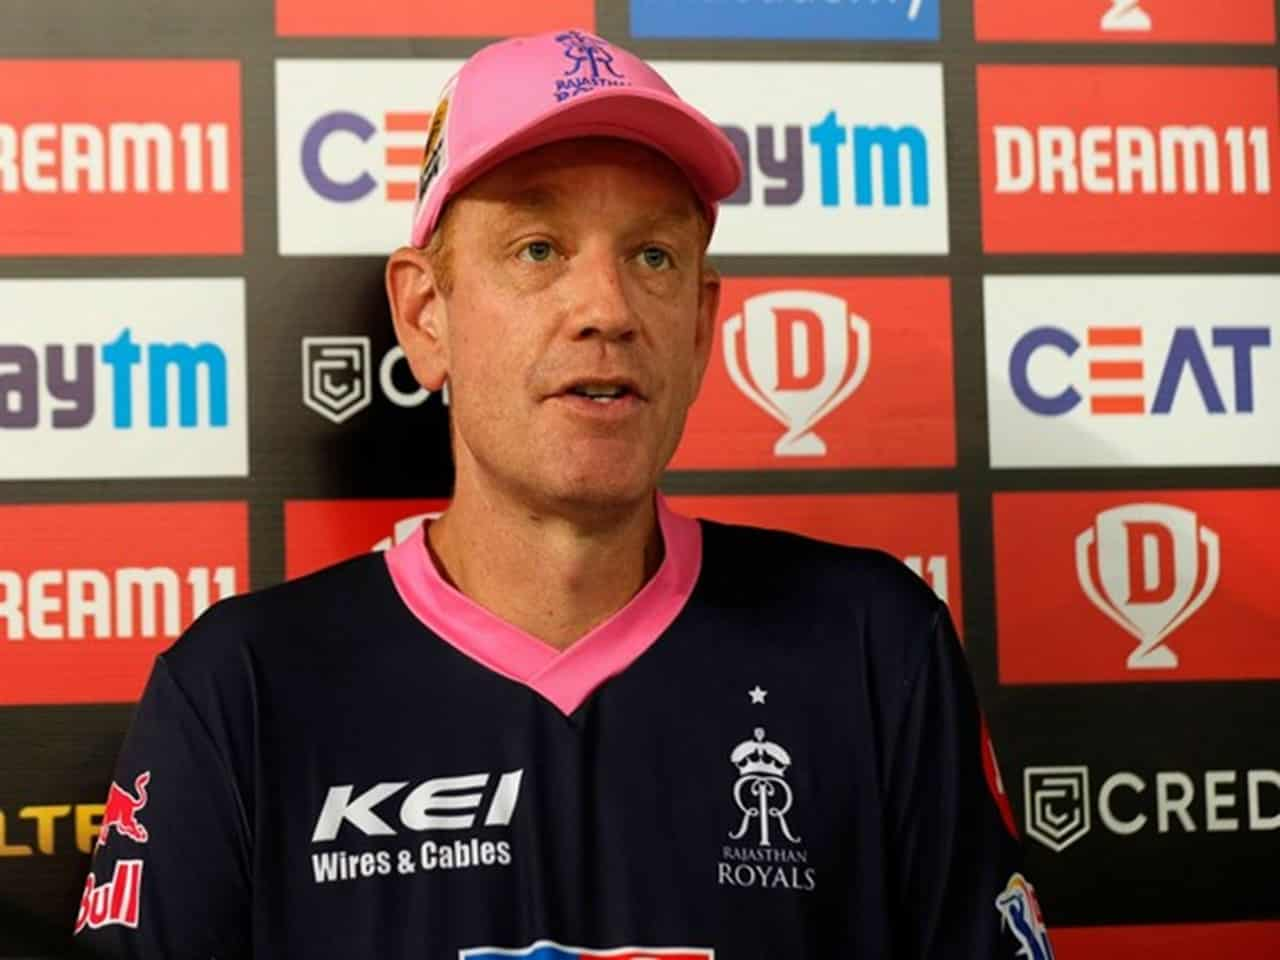 IPL 2020: Teams That Have Nothing To Lose Can Be Quite Dangerous - Andrew McDonald